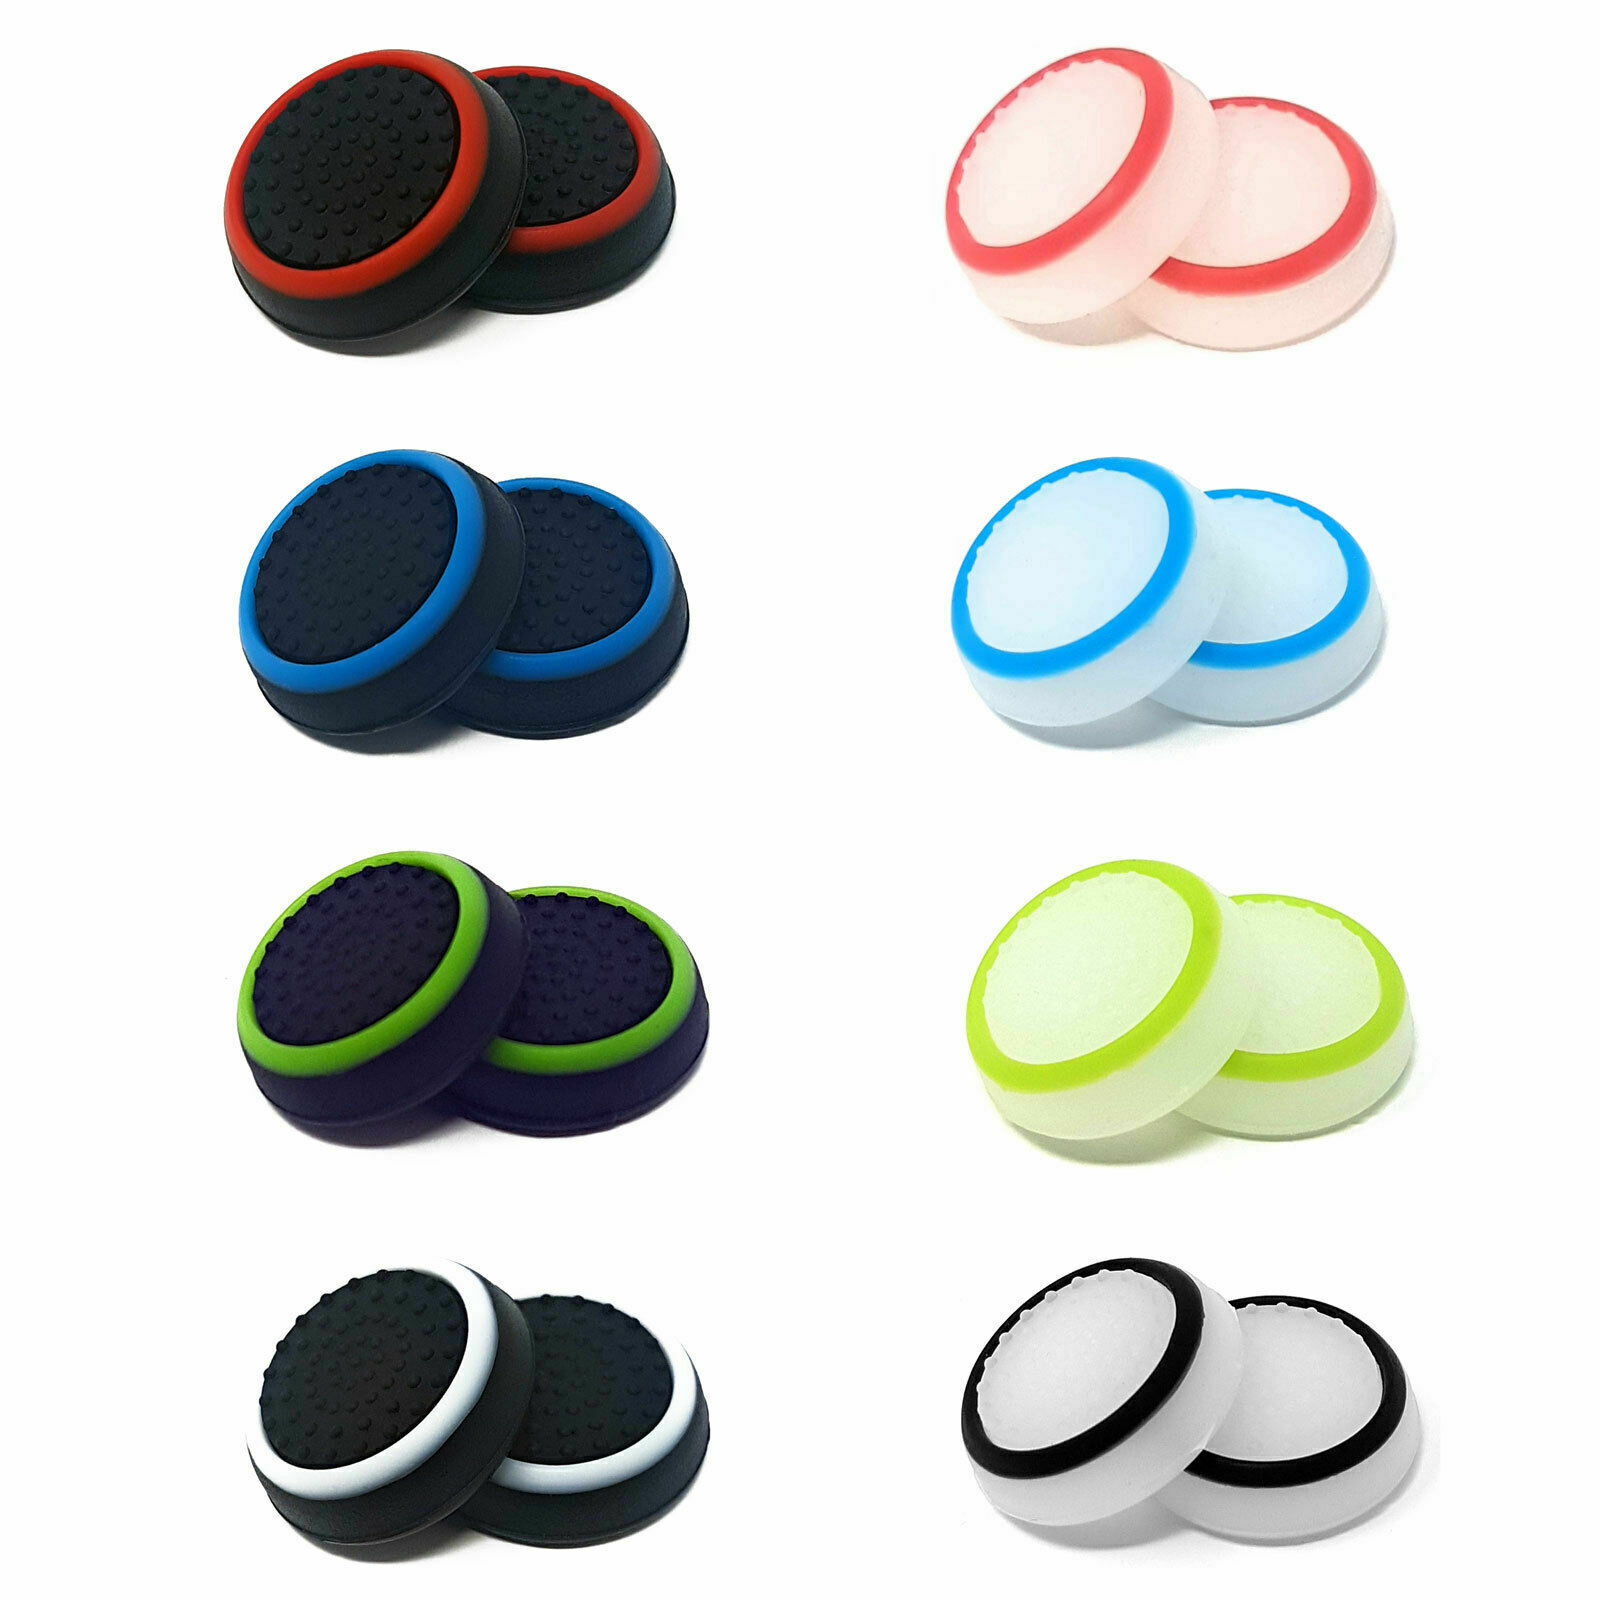 1 x Pair Of Rubber Controller Thumb Grips PS4 PS5 Cover Pads Analog Xbox One UK